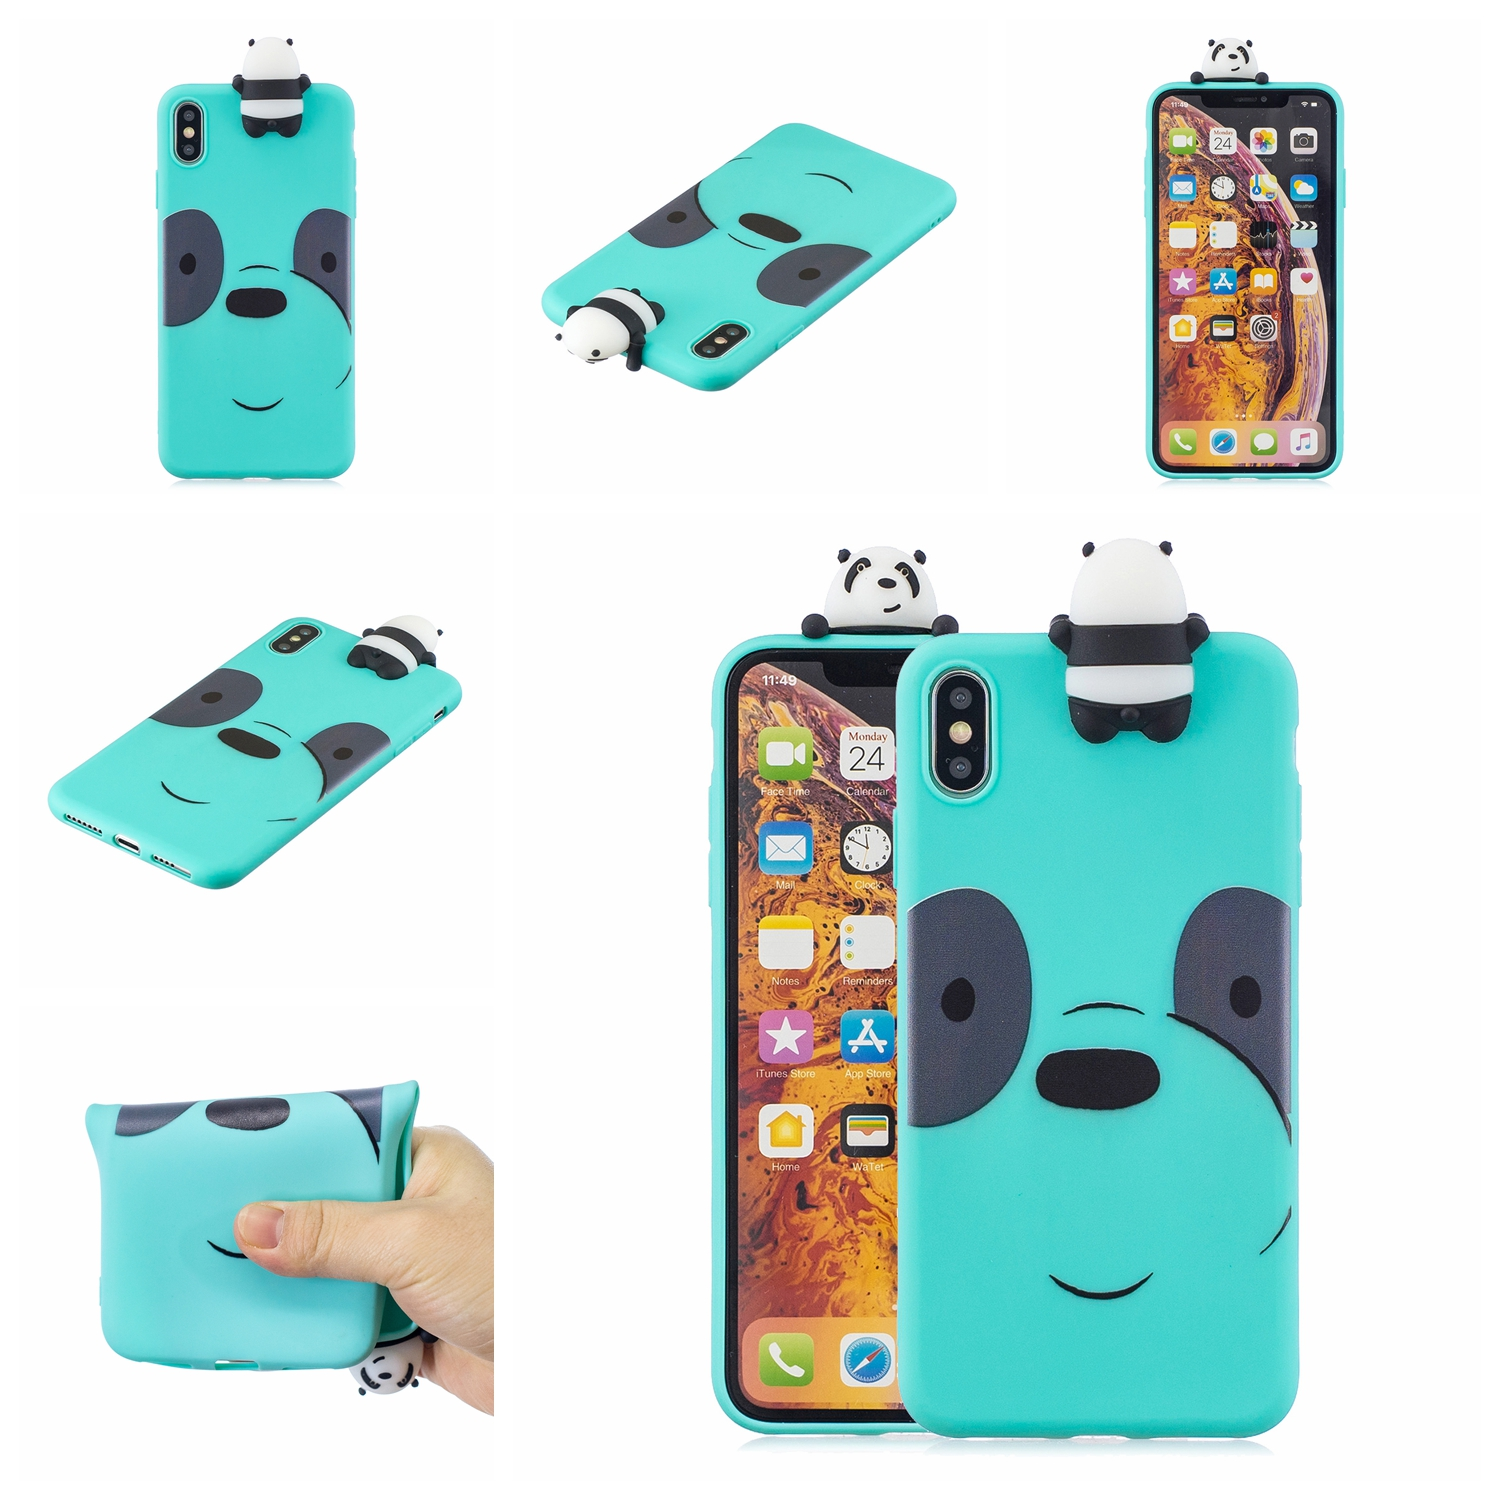 For VIVO V7 plus/Y75S/Y79/Y73 3D Cartoon Lovely Coloured Painted Soft TPU Back Cover Non-slip Shockproof Full Protective Case Light blue